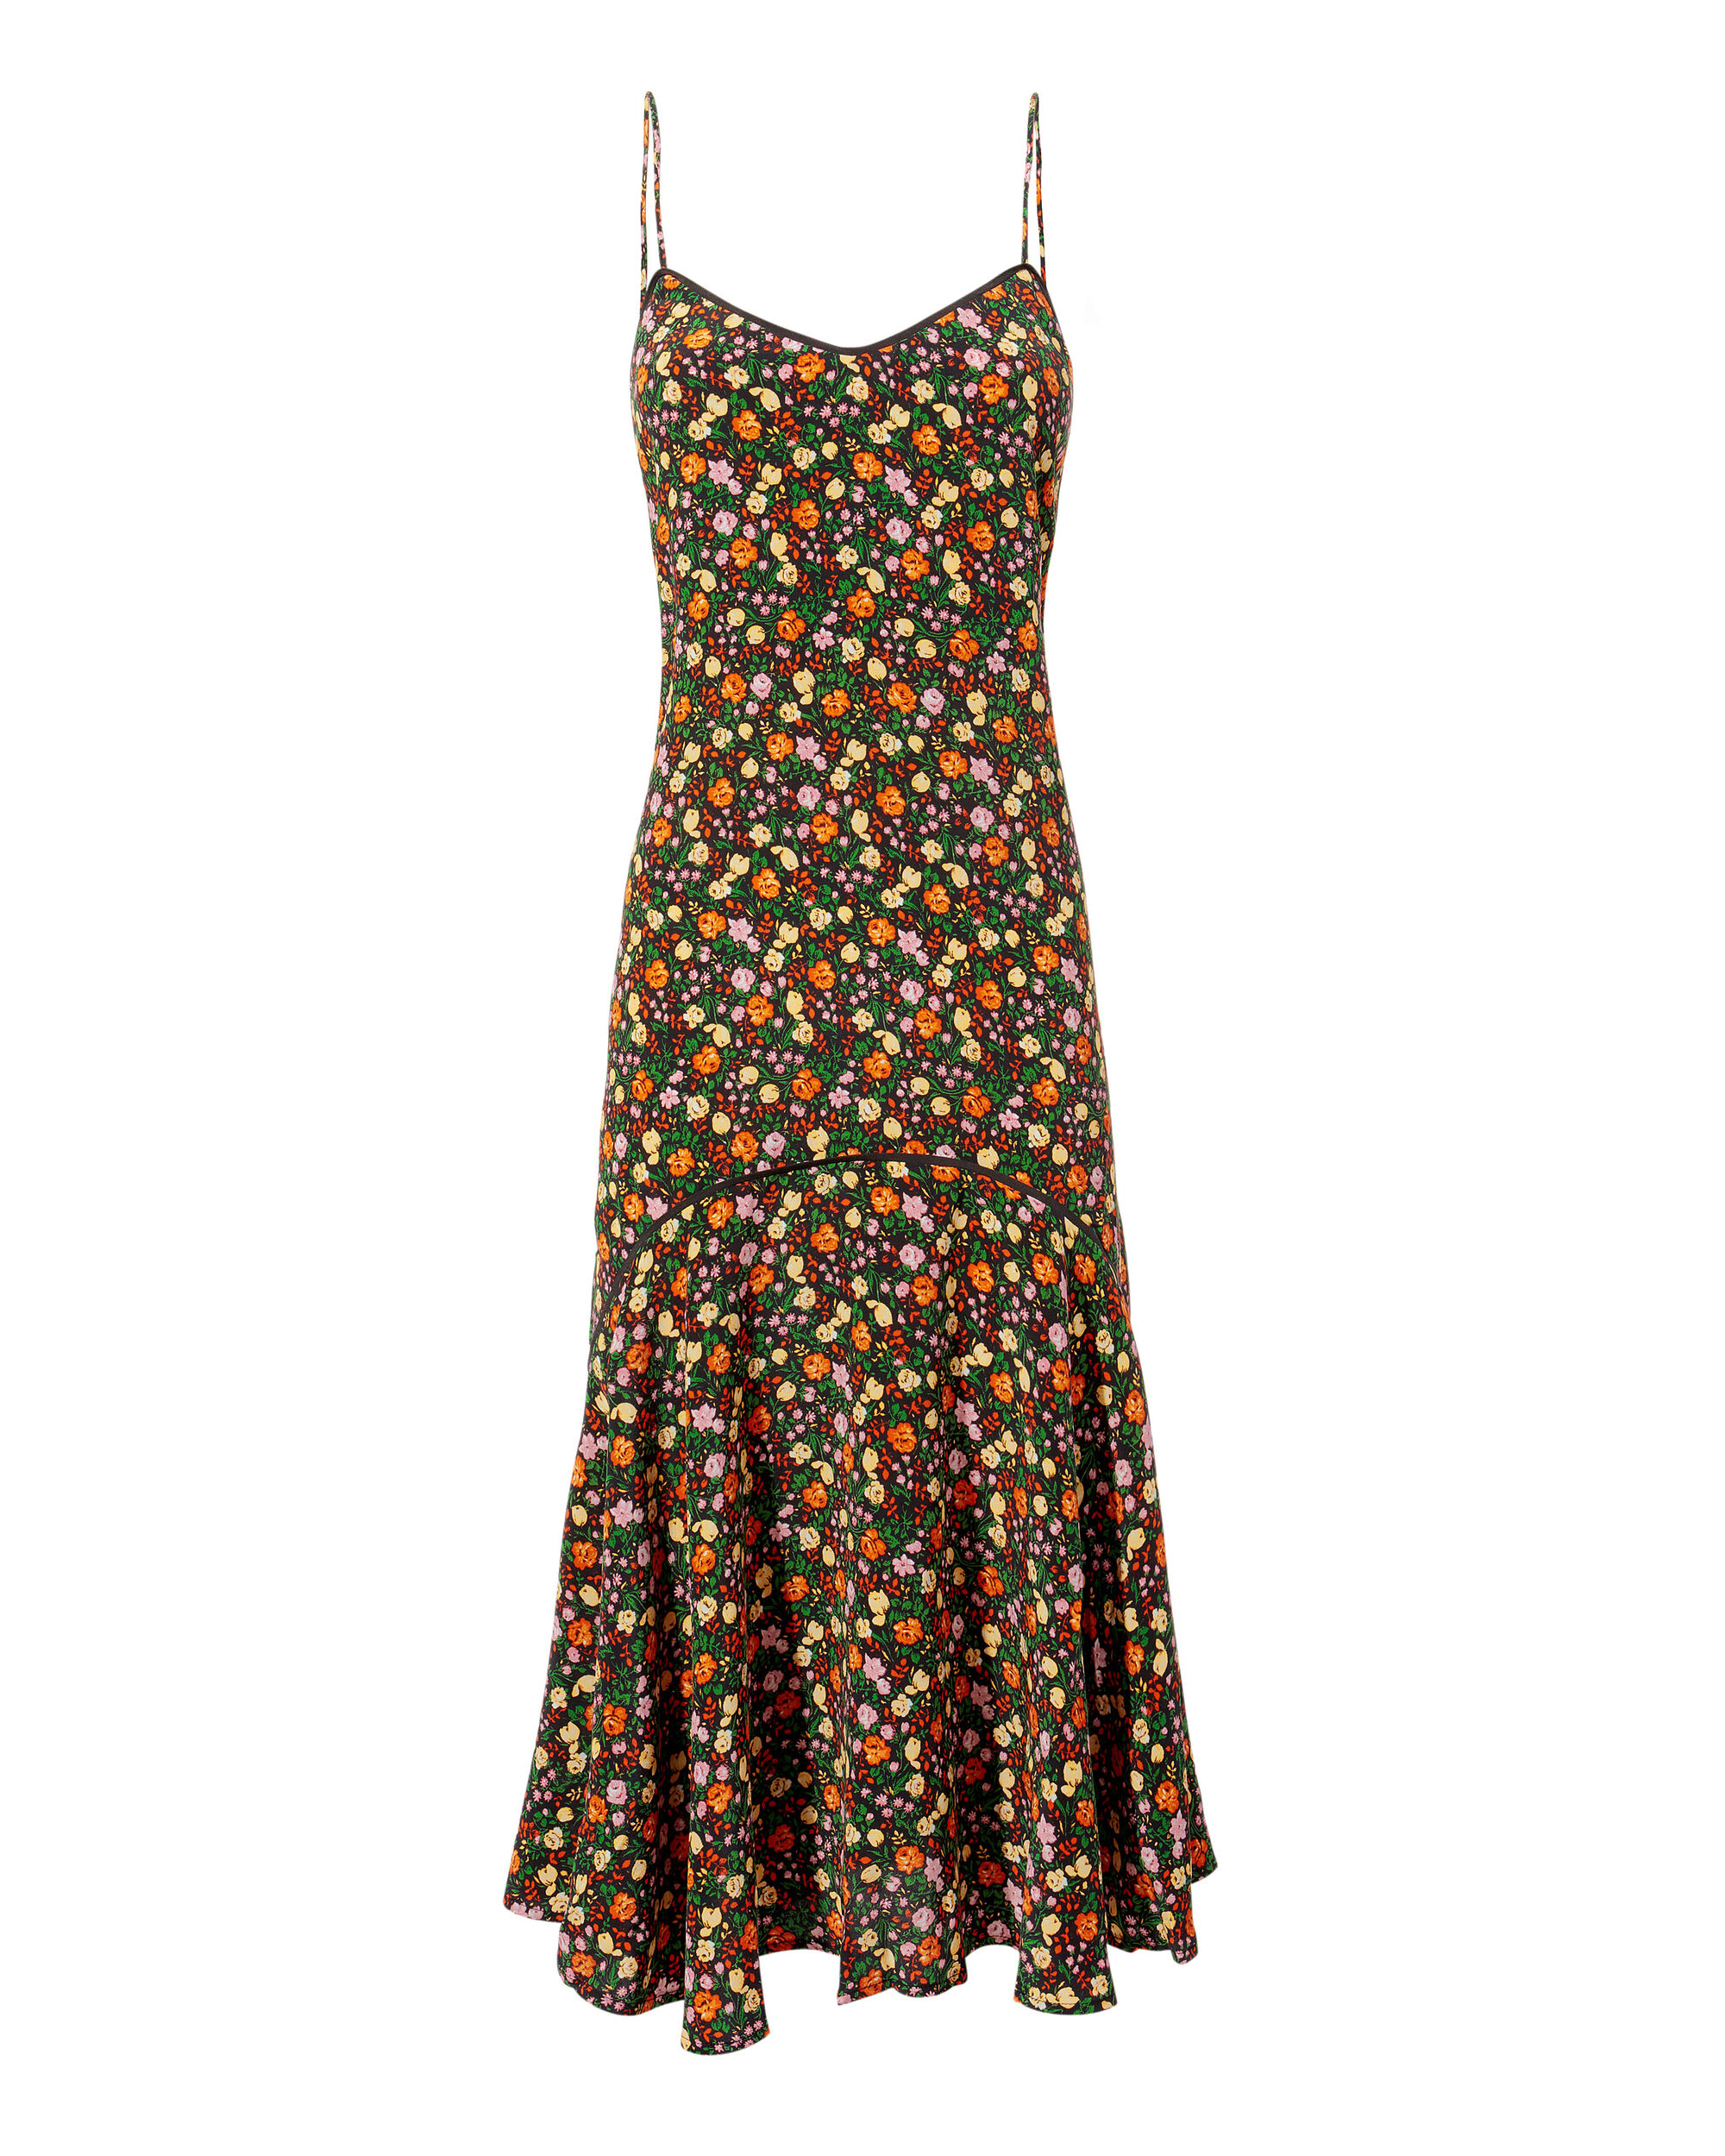 Joycedale Marina Multicolored Flutter Hem Dress, MULTI, hi-res